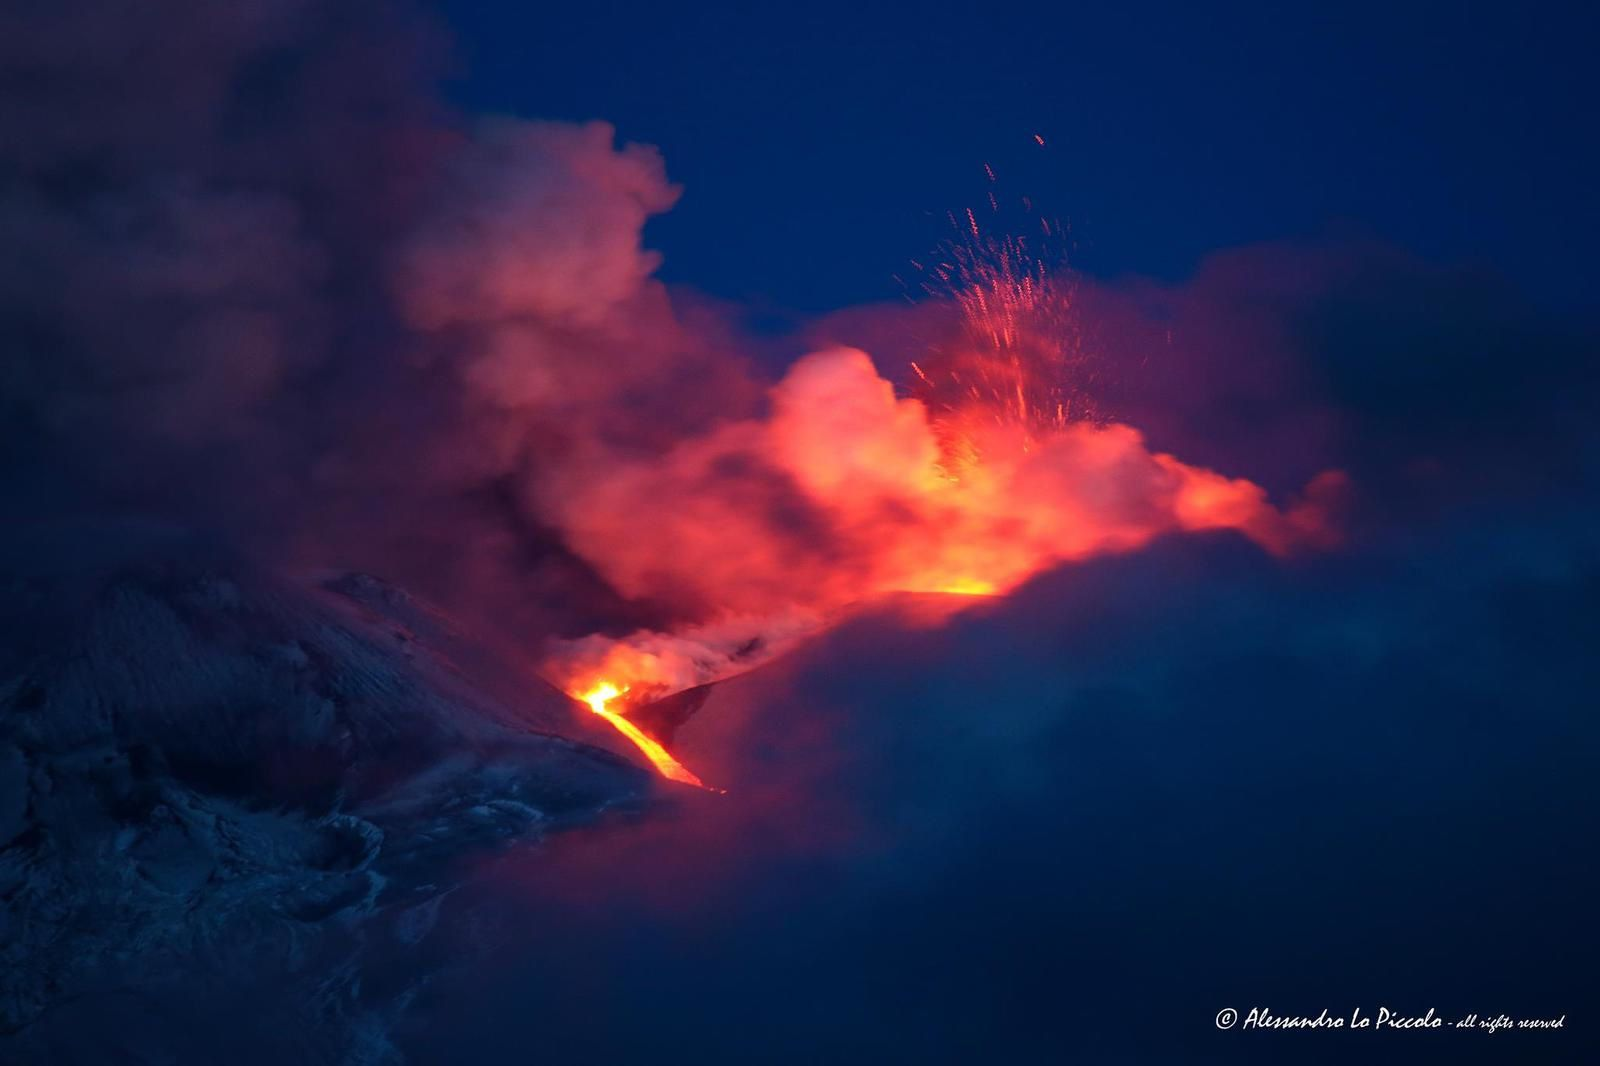 Etna - strombolian activity and lava flow on 05/21/2016 / 5:15 CET - Photo © Alessandro Lo Piccolo